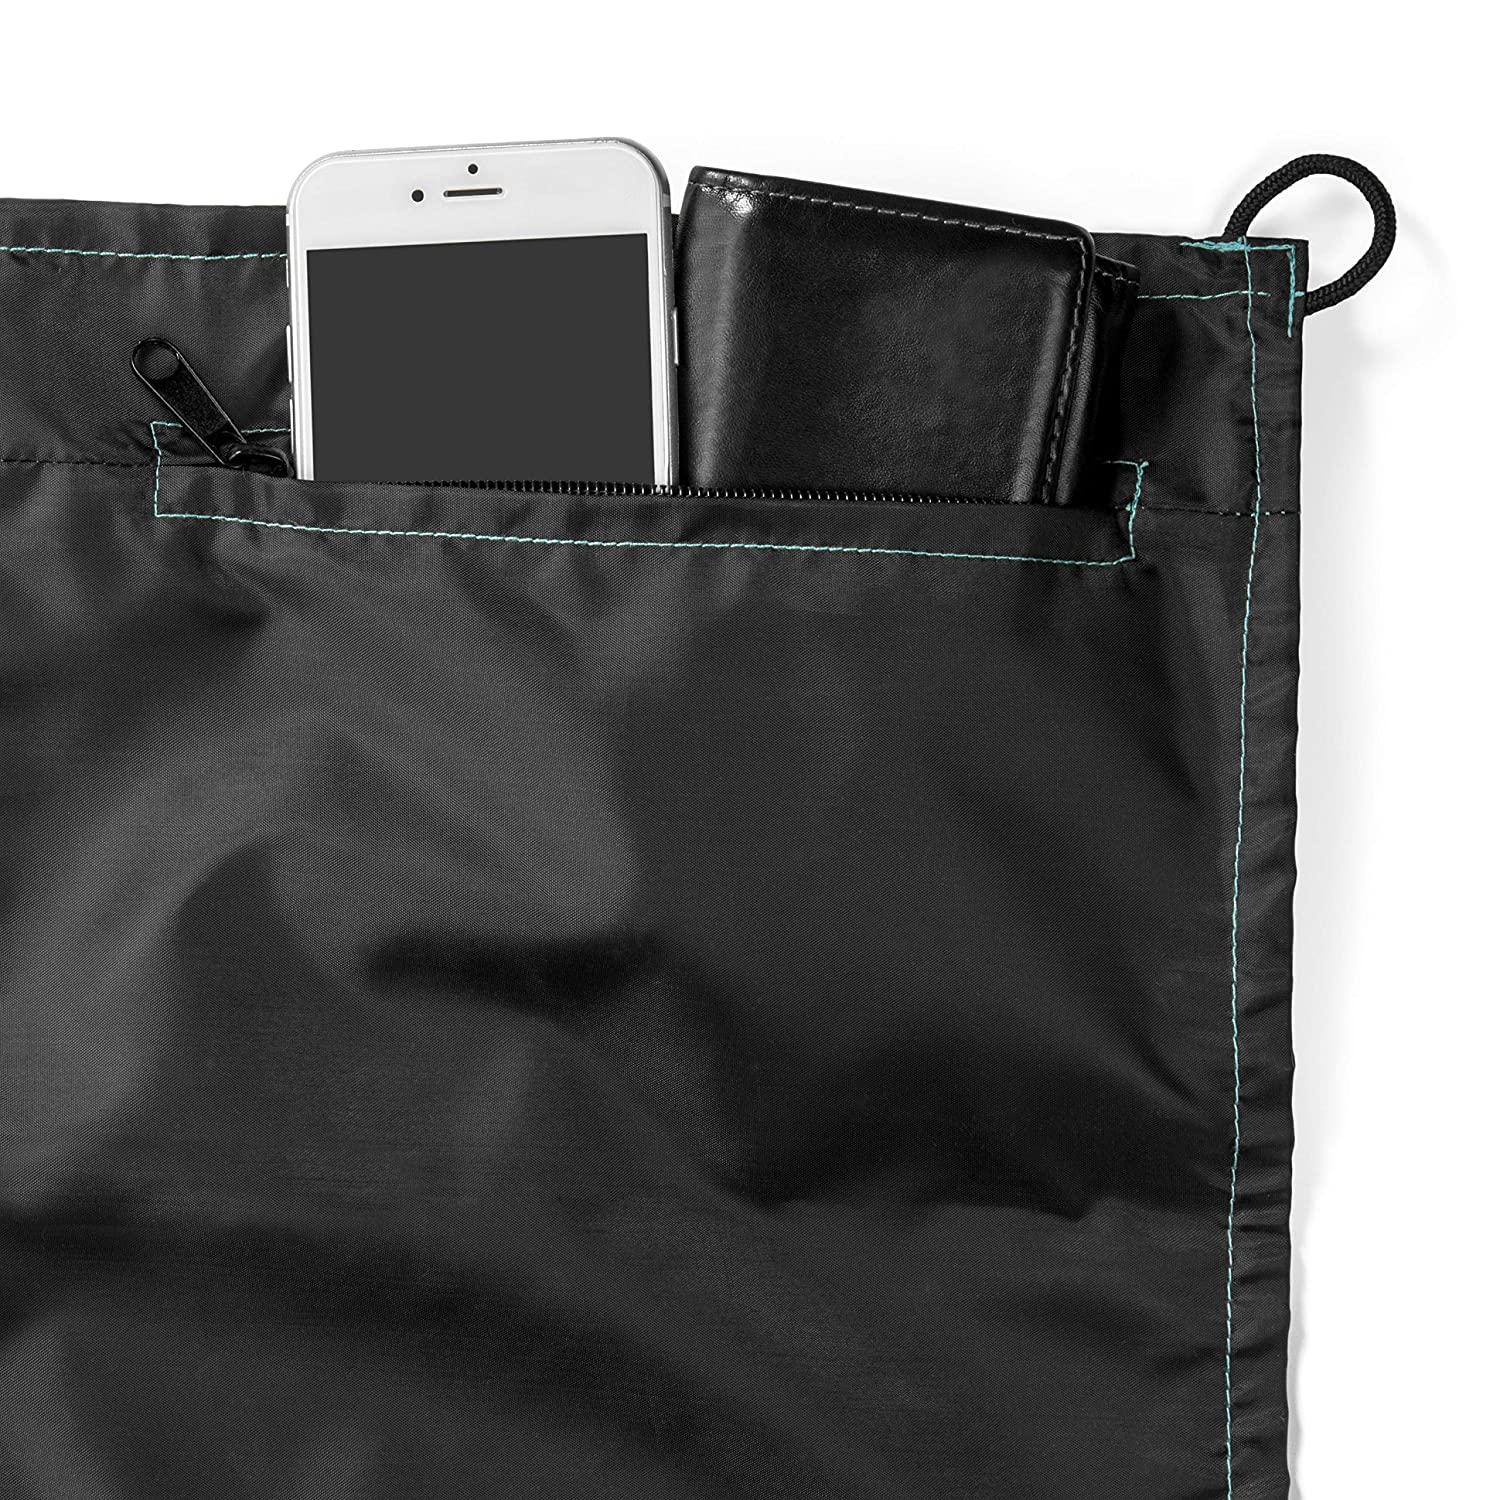 Great for Beach 4 Weightable Pockets 10 x 9.5 Mat Quick Drying Compact Sand Free Outdoor Beach Blanket 8 Anchor Stakes and Zippered Valuables Pocket 4 Weightable Pockets Picnics Camping and Sporting Events 10/' x 9.5/' Mat